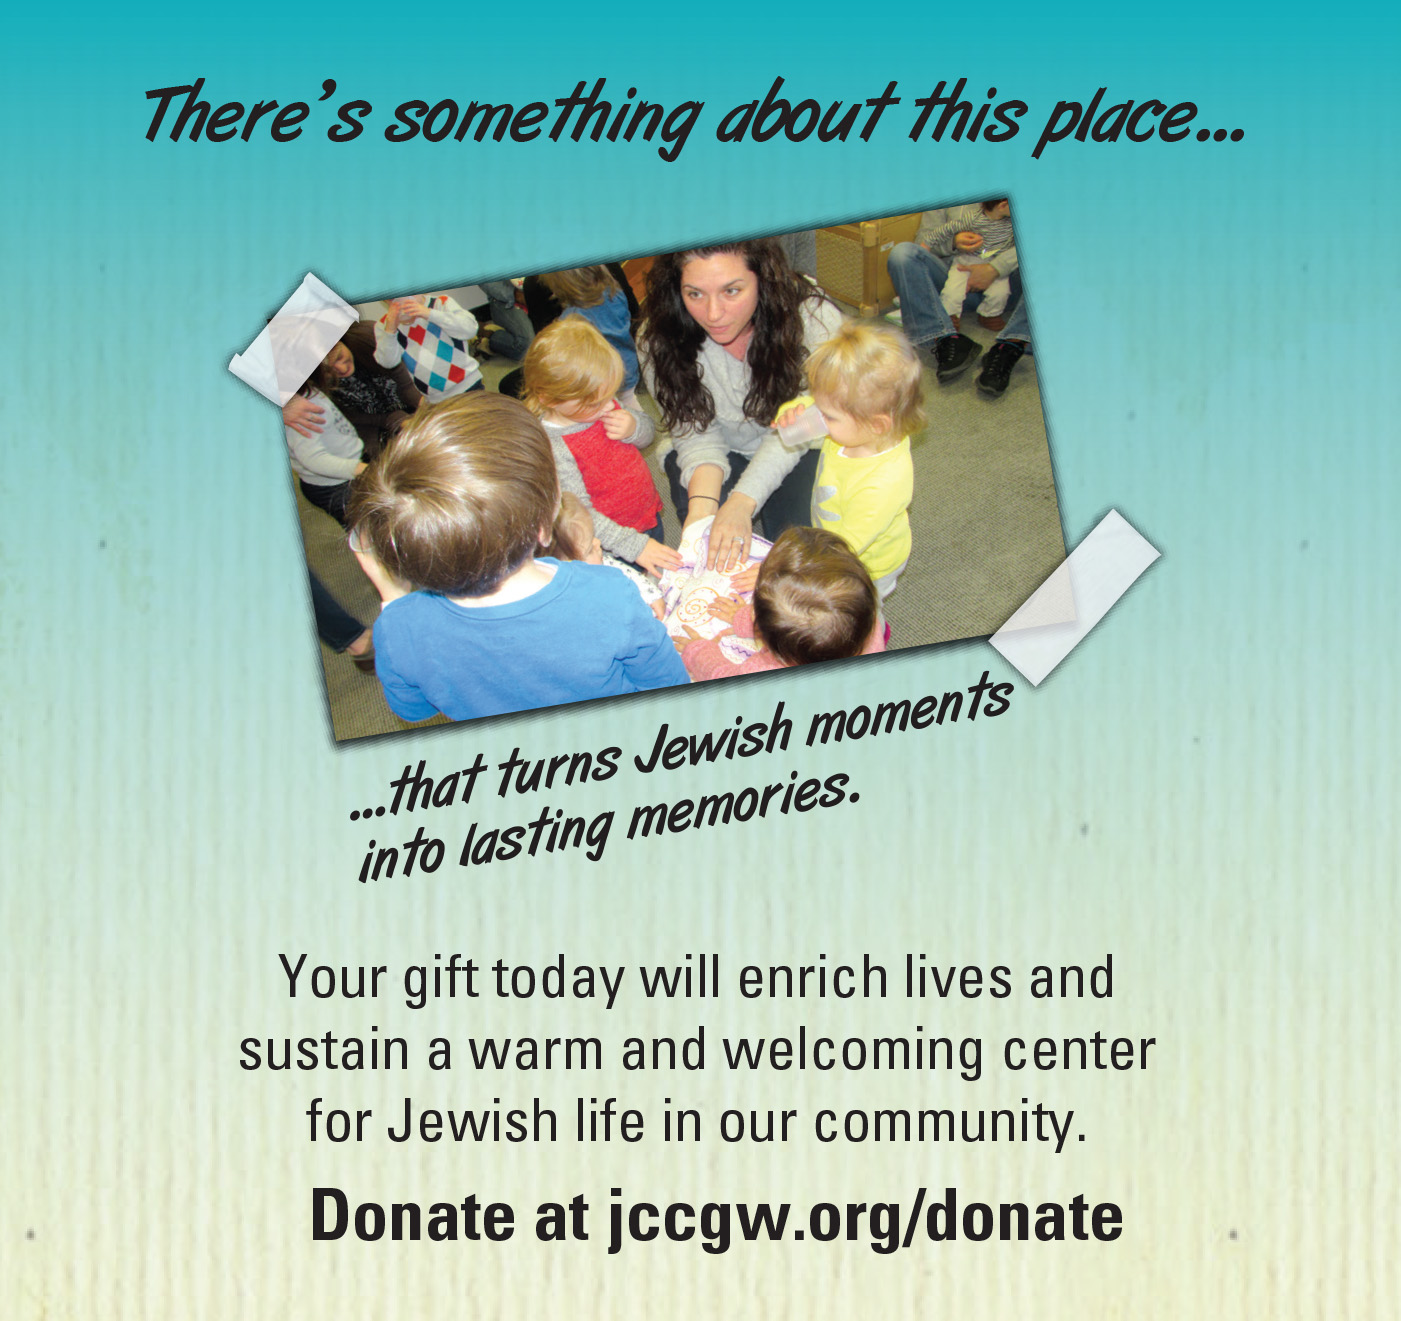 There's something about this place where lifelong friendships begin. Your gift today will enrich lives and sustain a warm and welcoming center for Jewish life in our community.